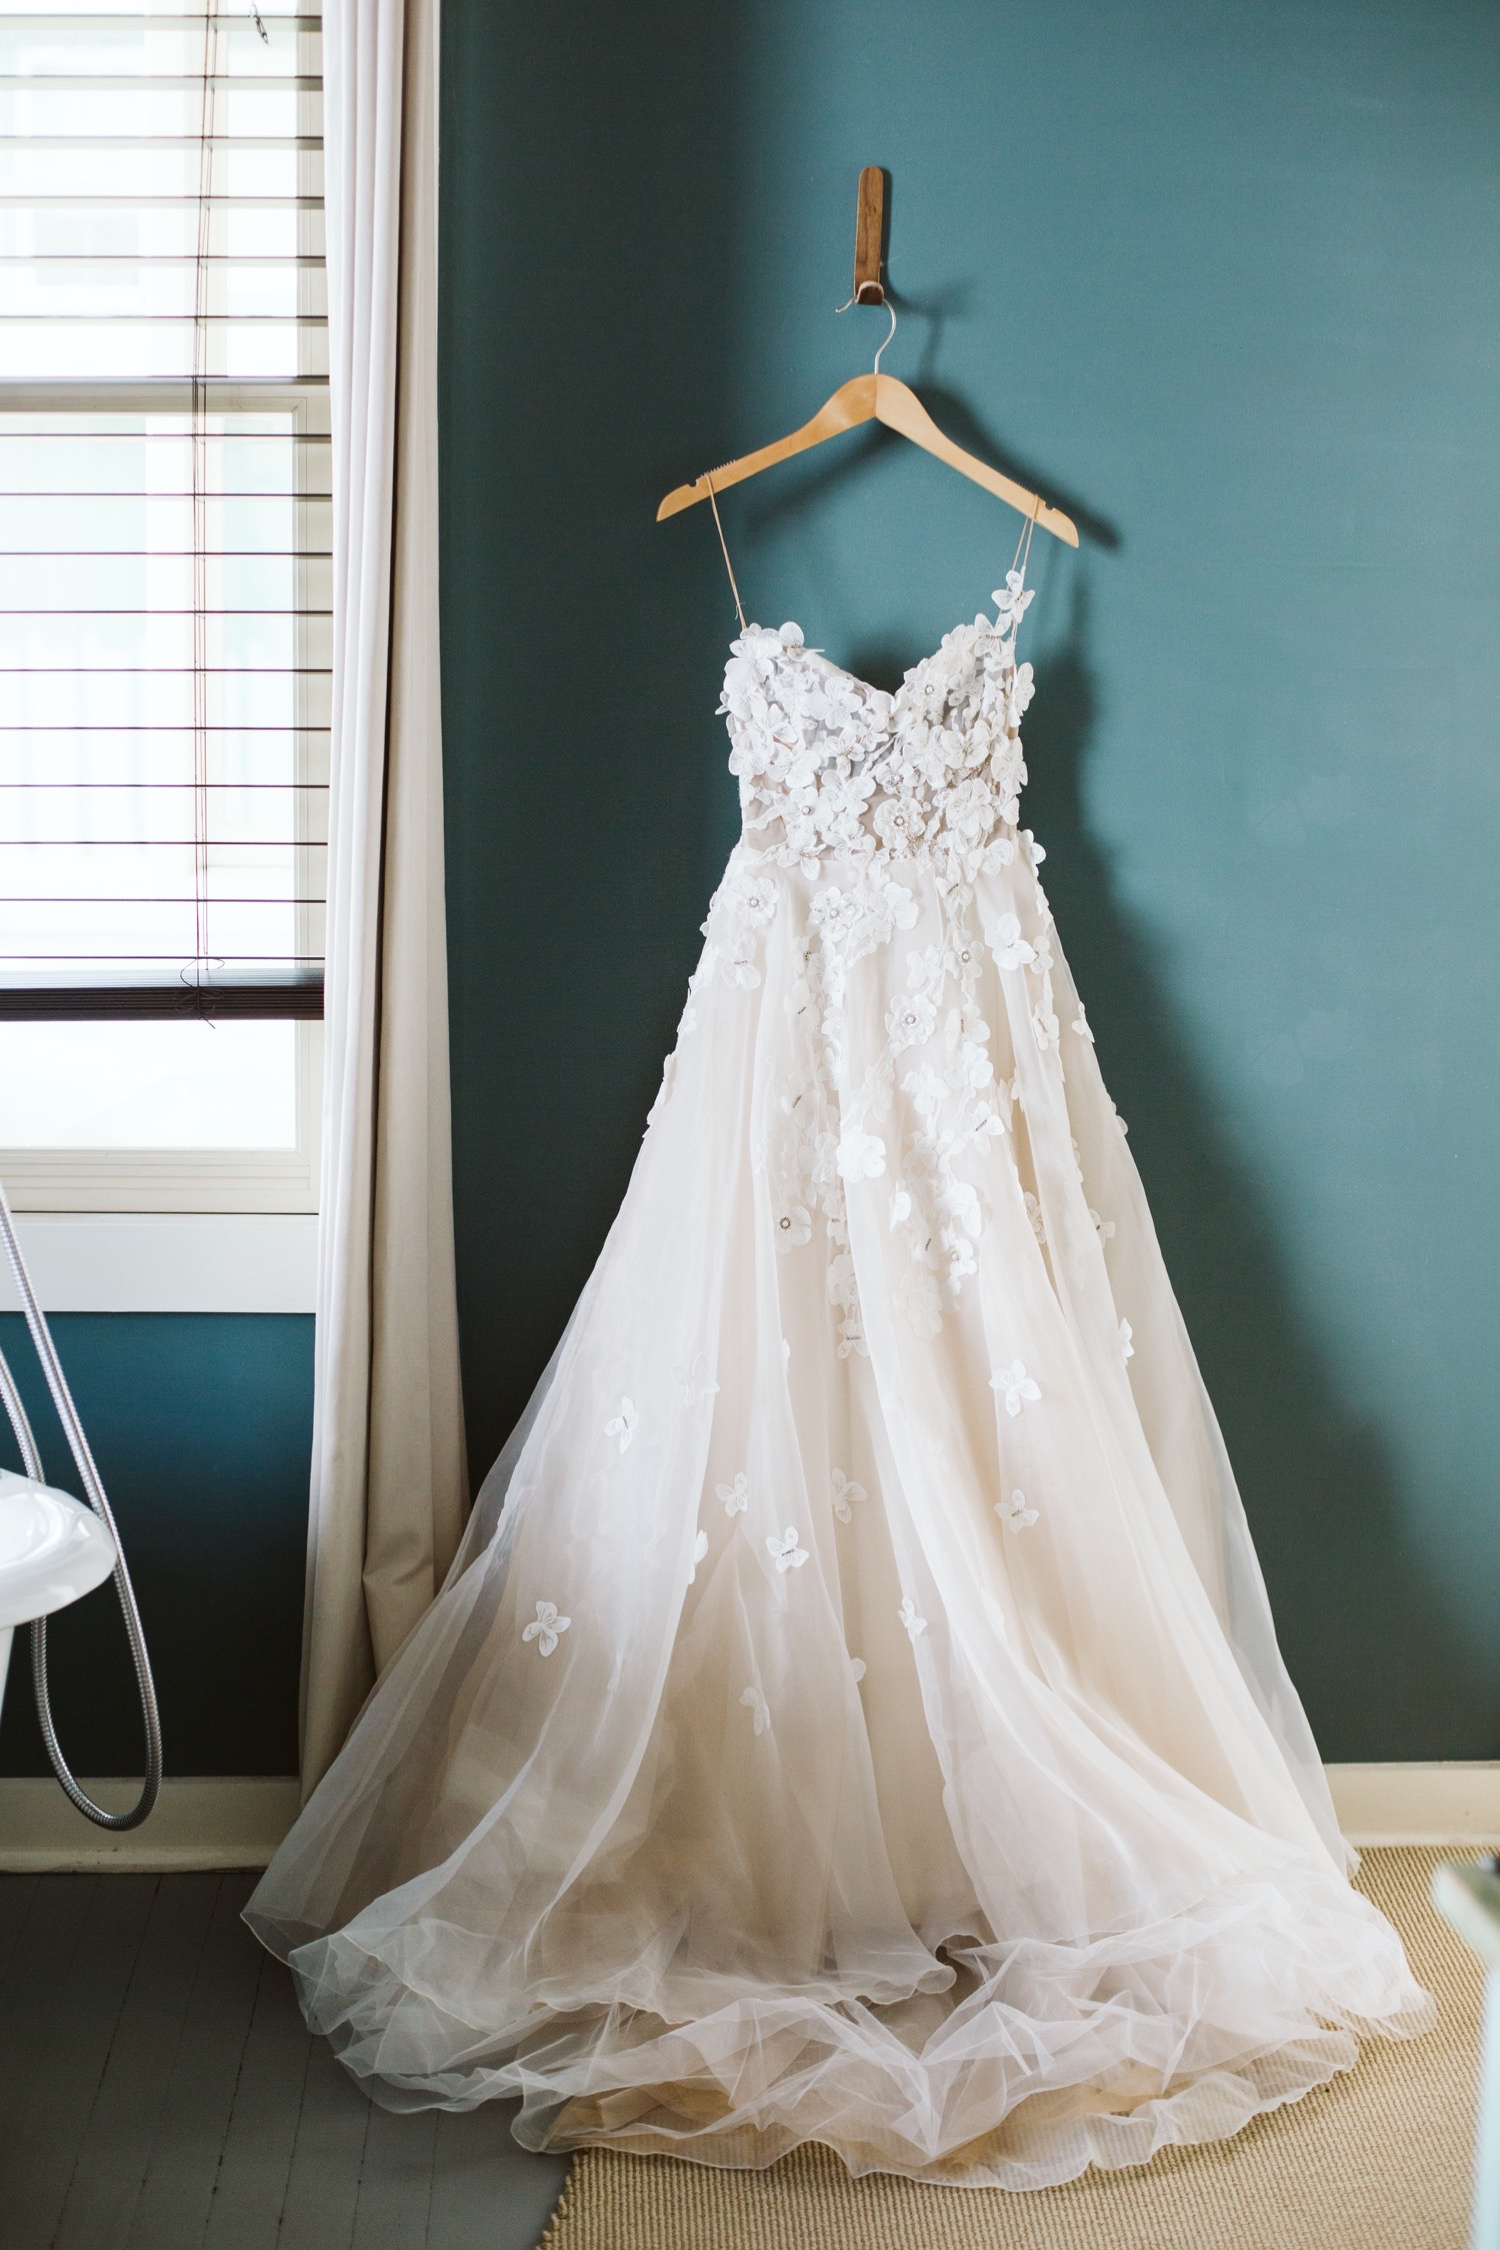 Our story bridal wedding dress wedding gown hanging in the bridal suite